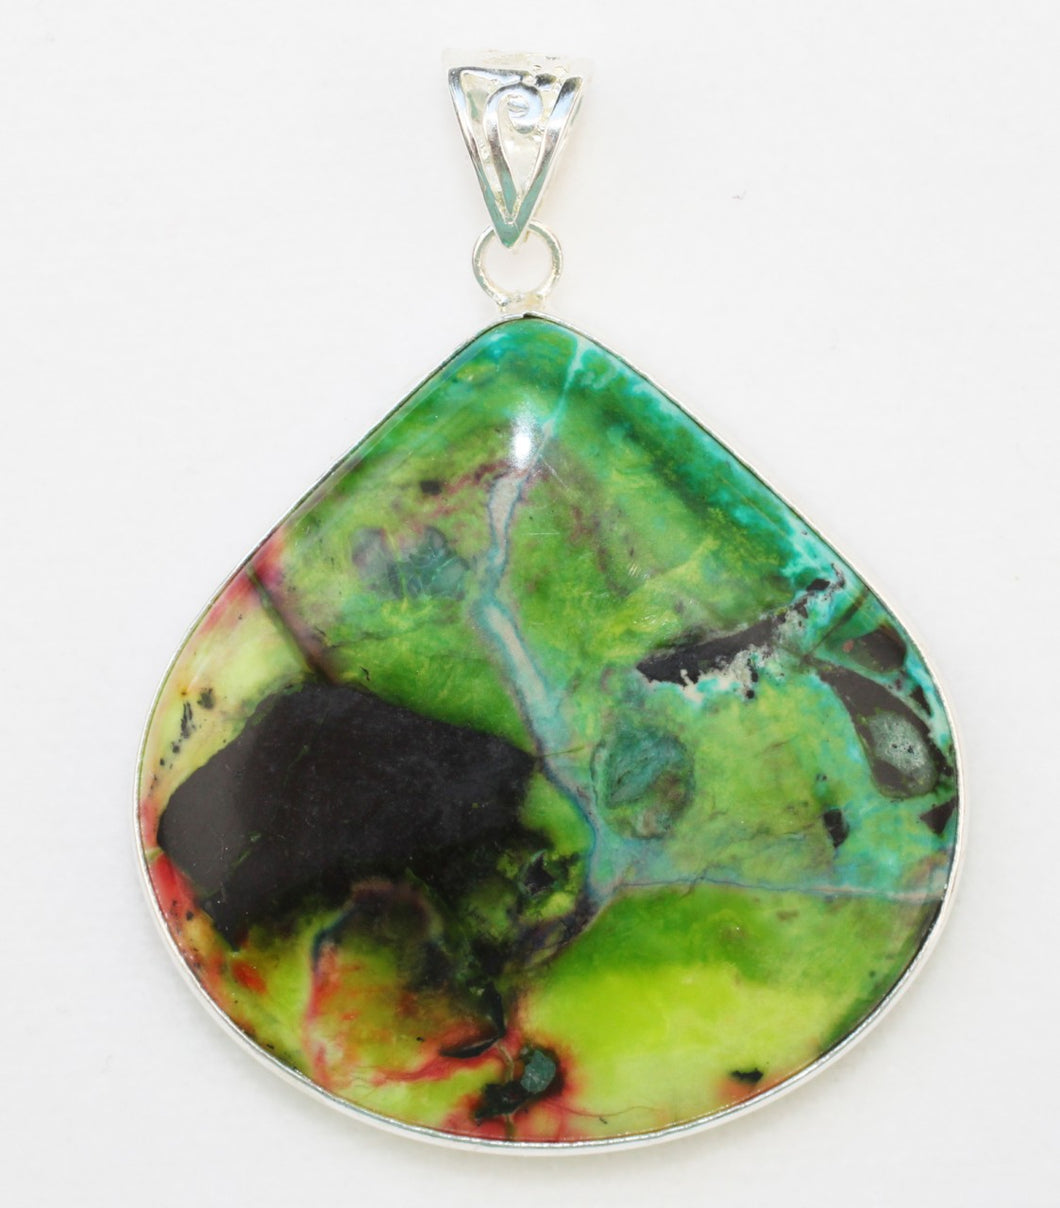 Sonora Sunrise Jasper Pendant looks like abstract art